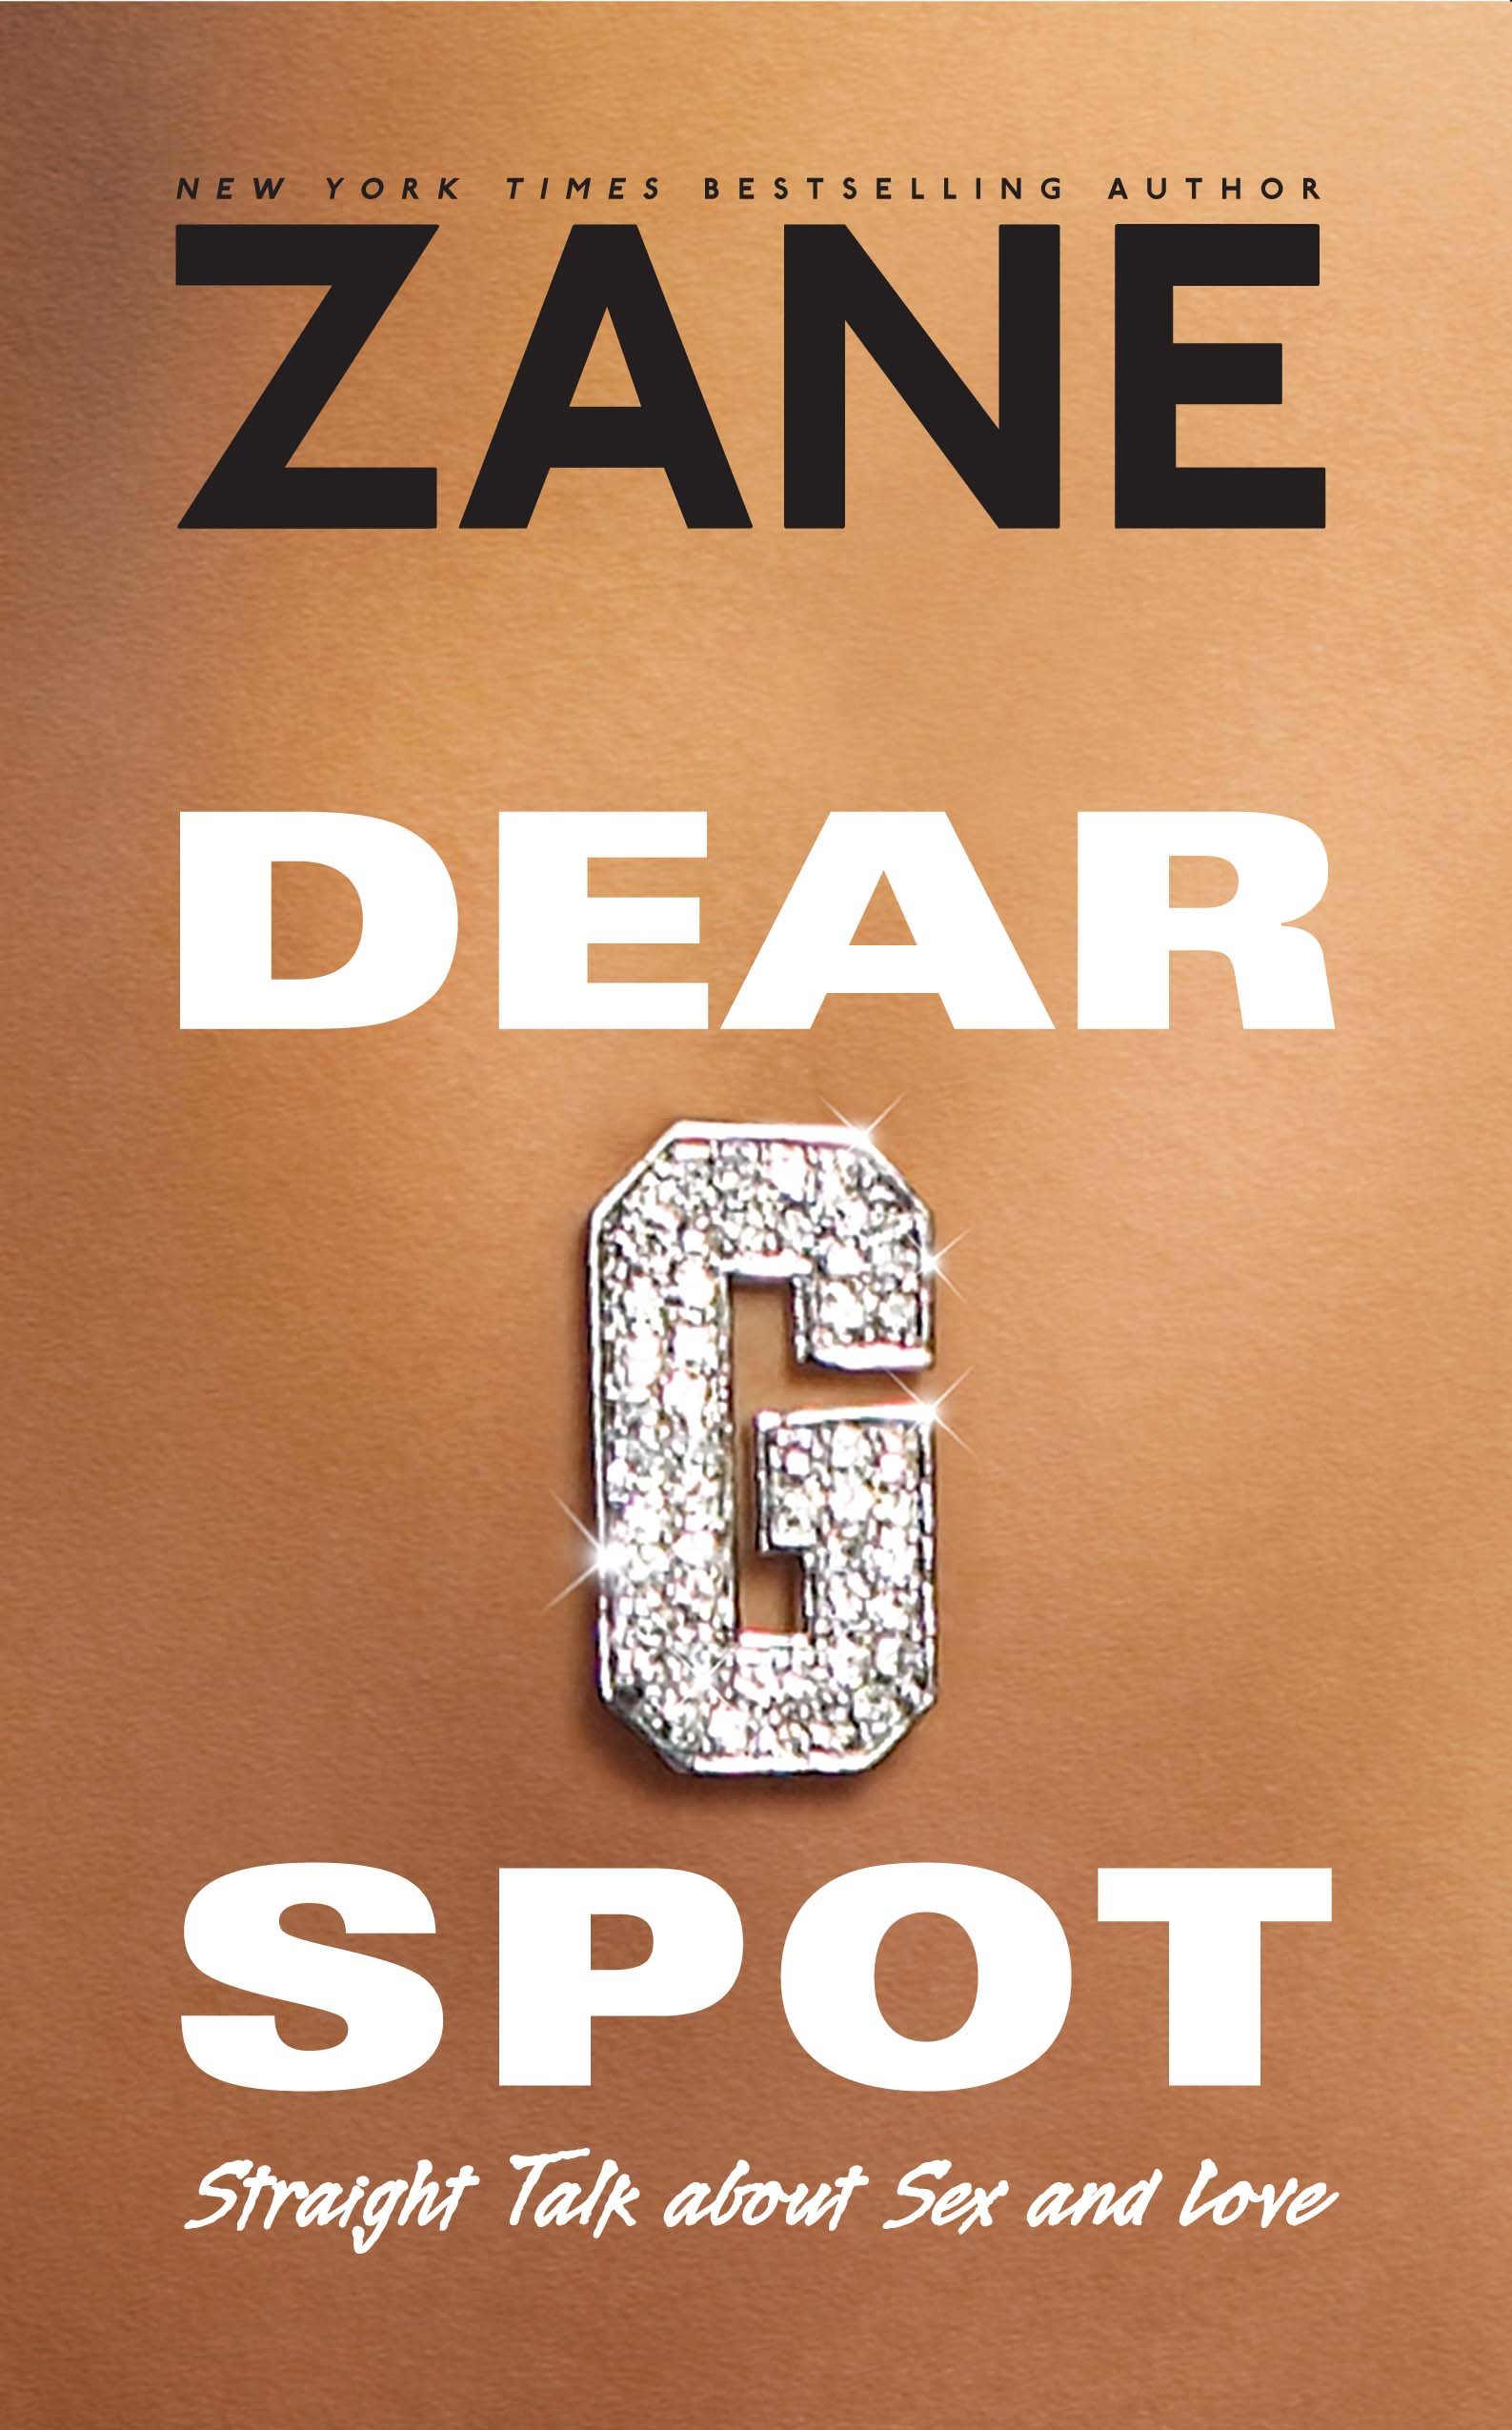 Dear g spot book by zane official publisher page simon schuster straight talk about sex and love fandeluxe Choice Image